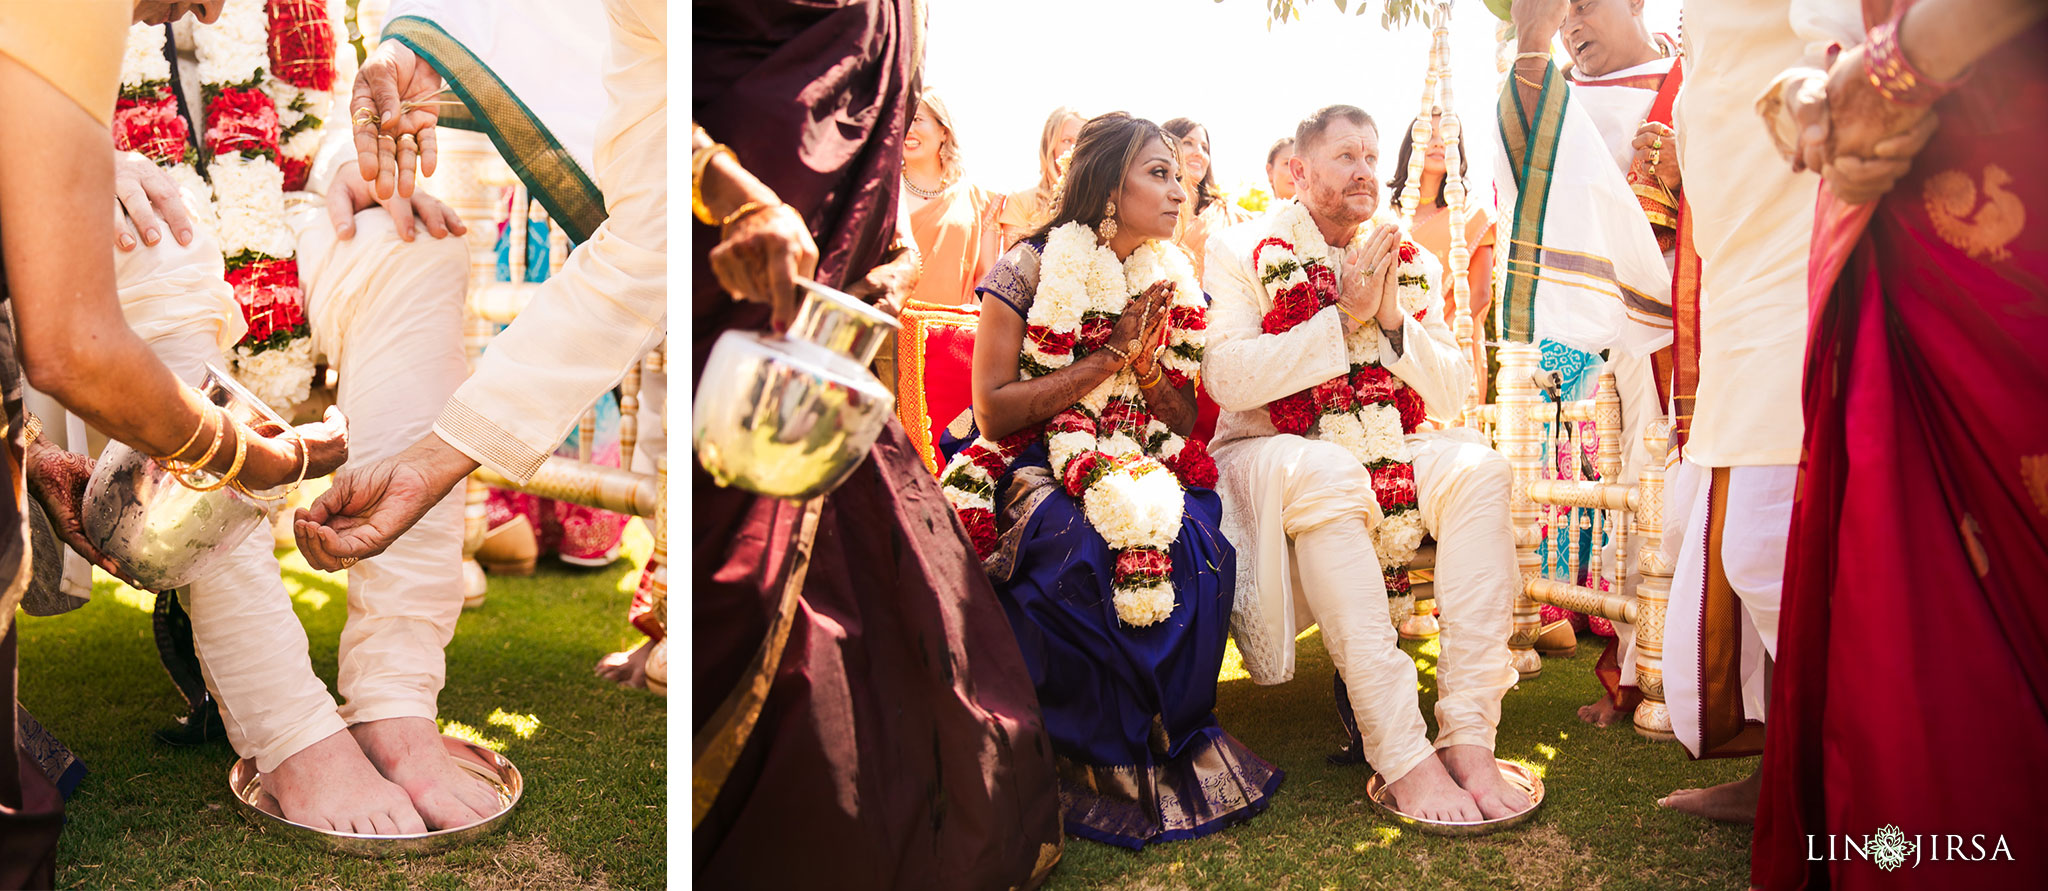 028 sherwood country club indian wedding ceremony photography